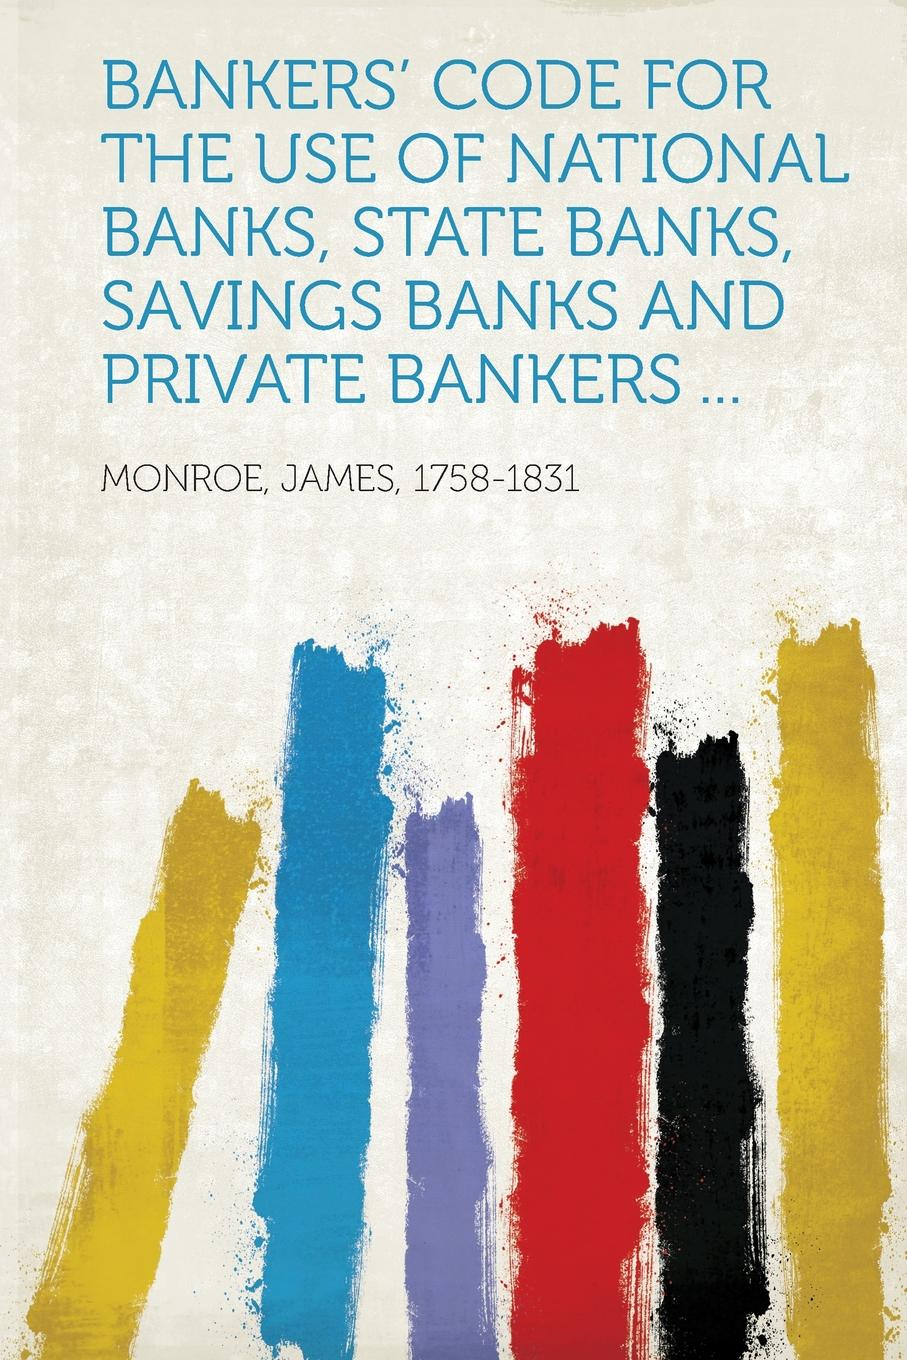 Monroe James 1758-1831 Bankers. Code for the Use of National Banks, State Banks, Savings Banks and Private Bankers ... are banks bad